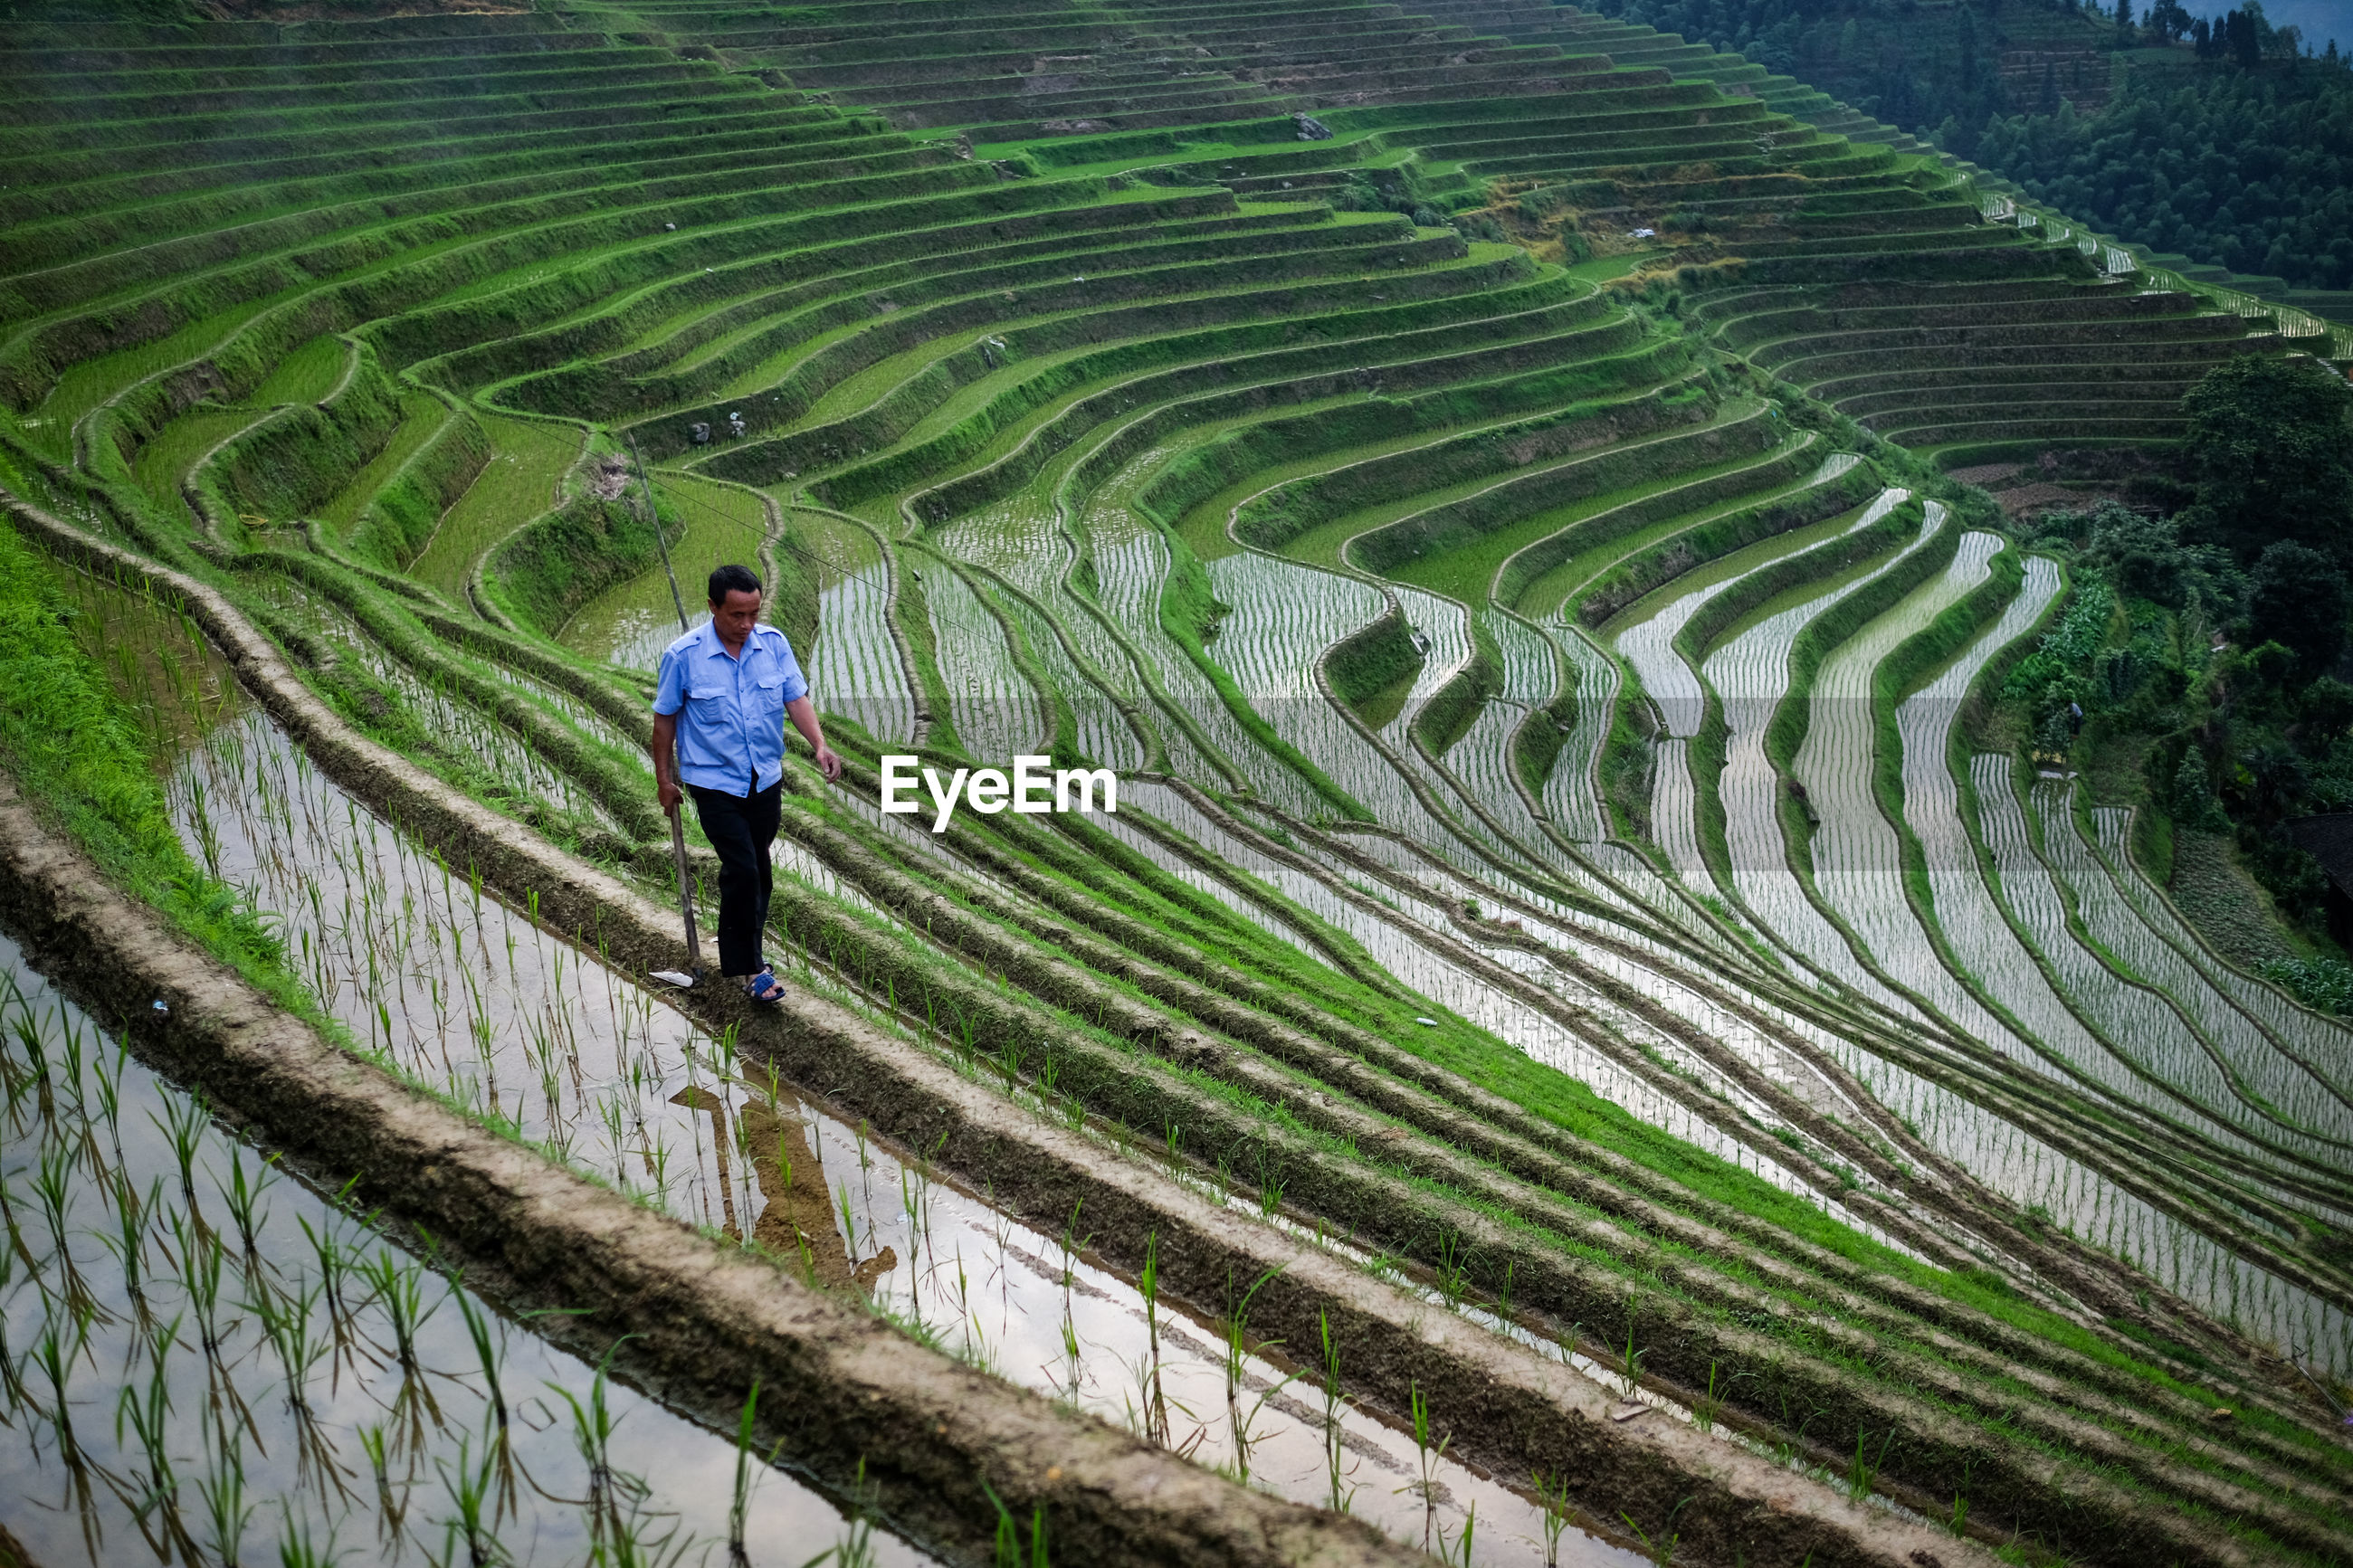 HIGH ANGLE VIEW OF PERSON WALKING ON FARM